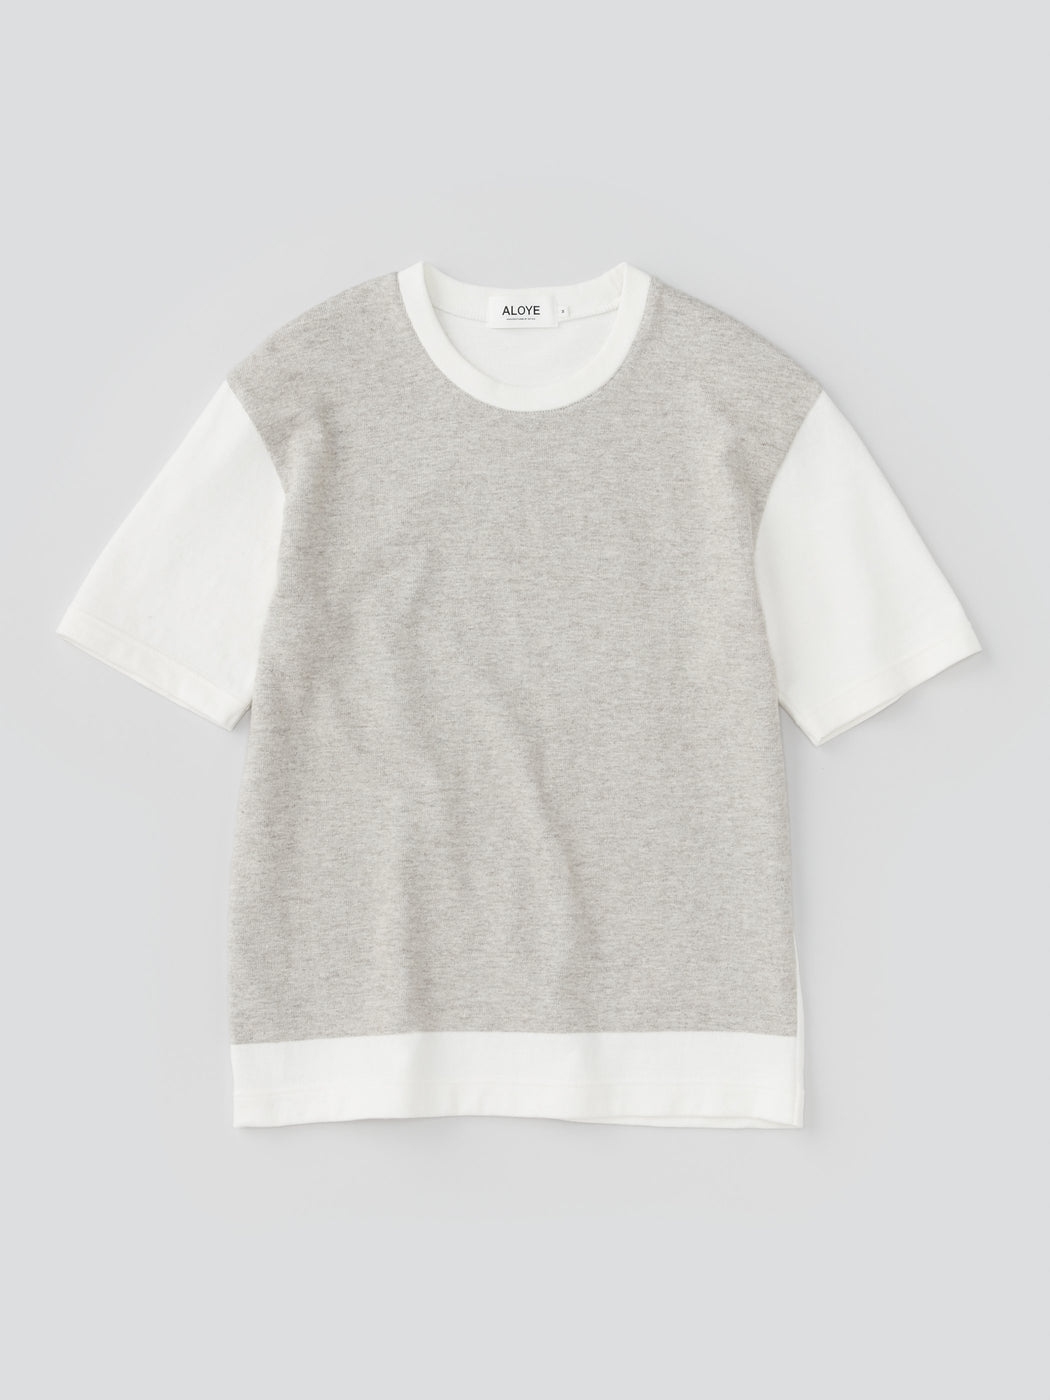 ALOYE G.F.G.S. Men's Cotton Knitted T-shirt Heather Gray-Off White